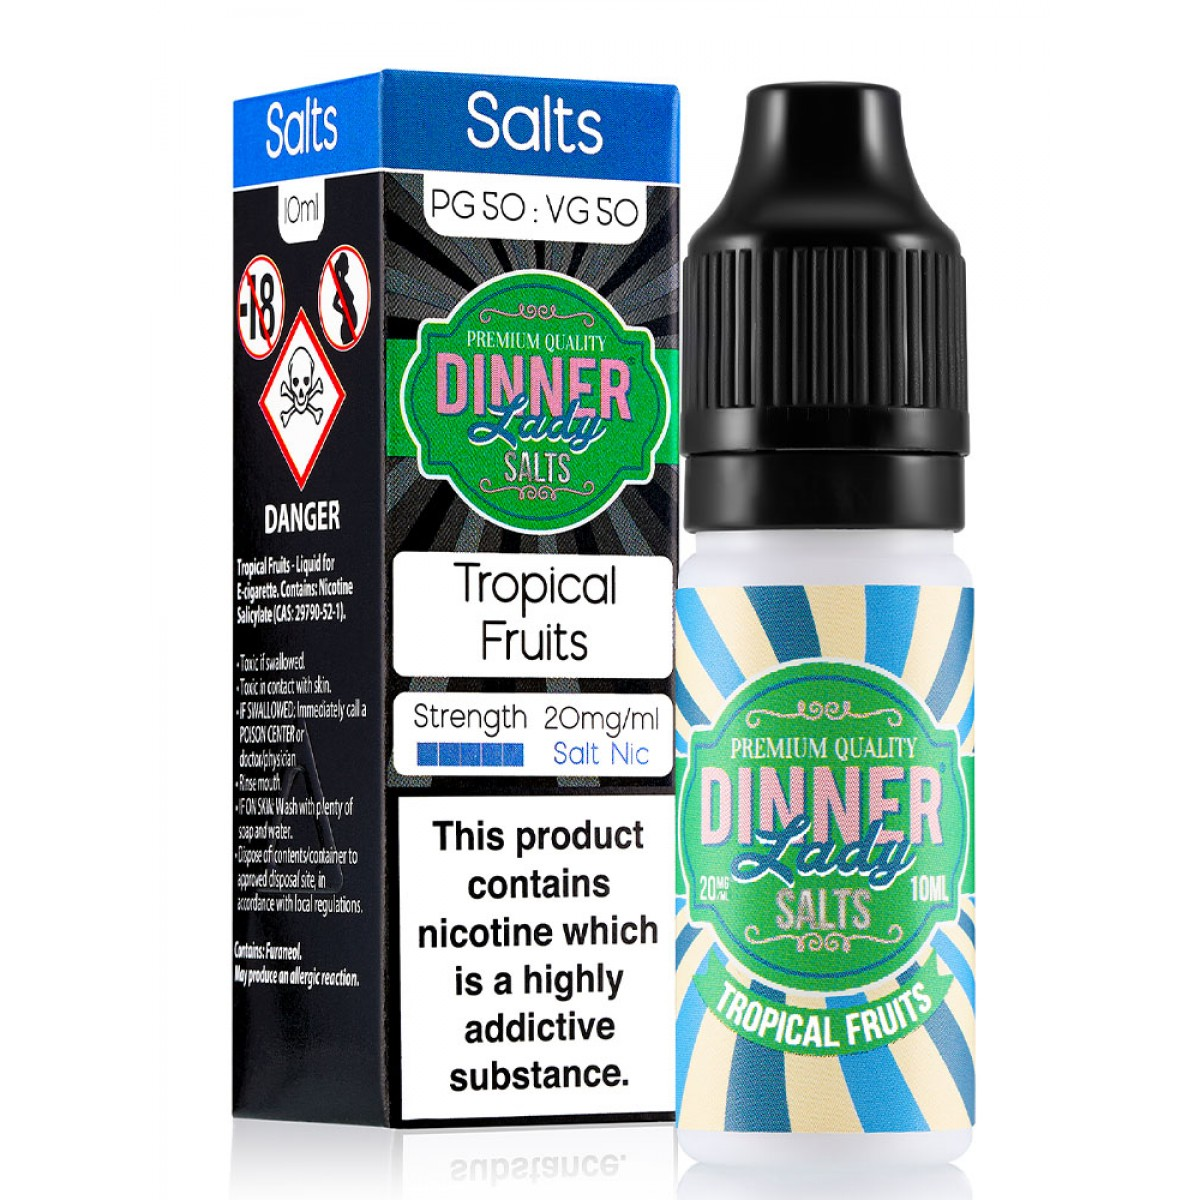 TROPICAL FRUITS BY DINNER LADY SALTS